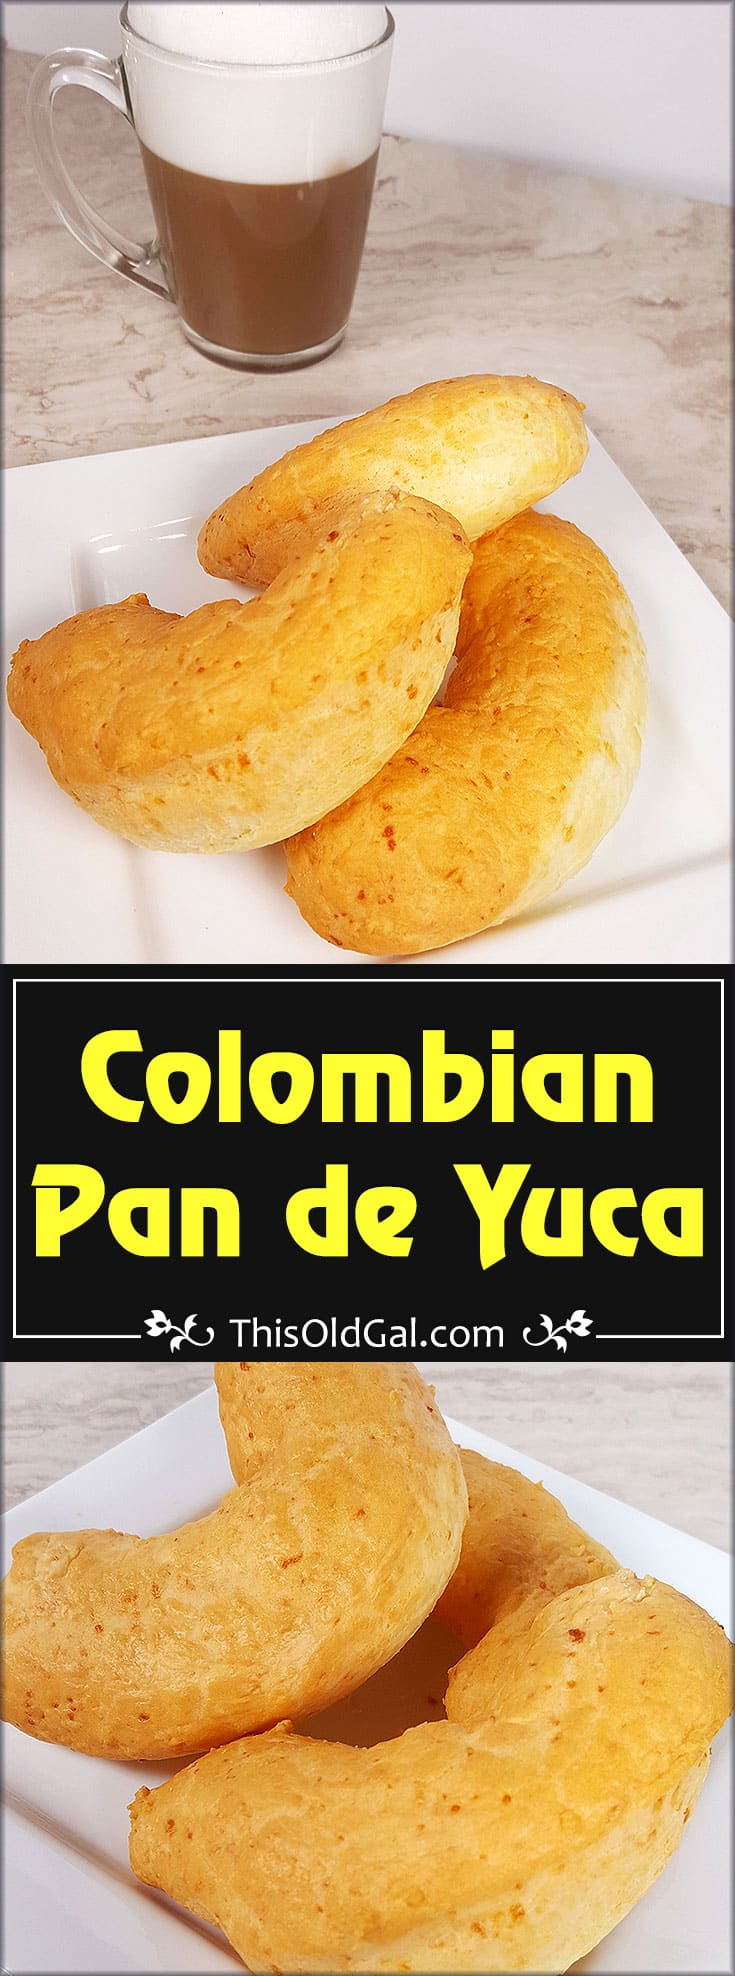 Air Fryer/Oven Pan de Yuca